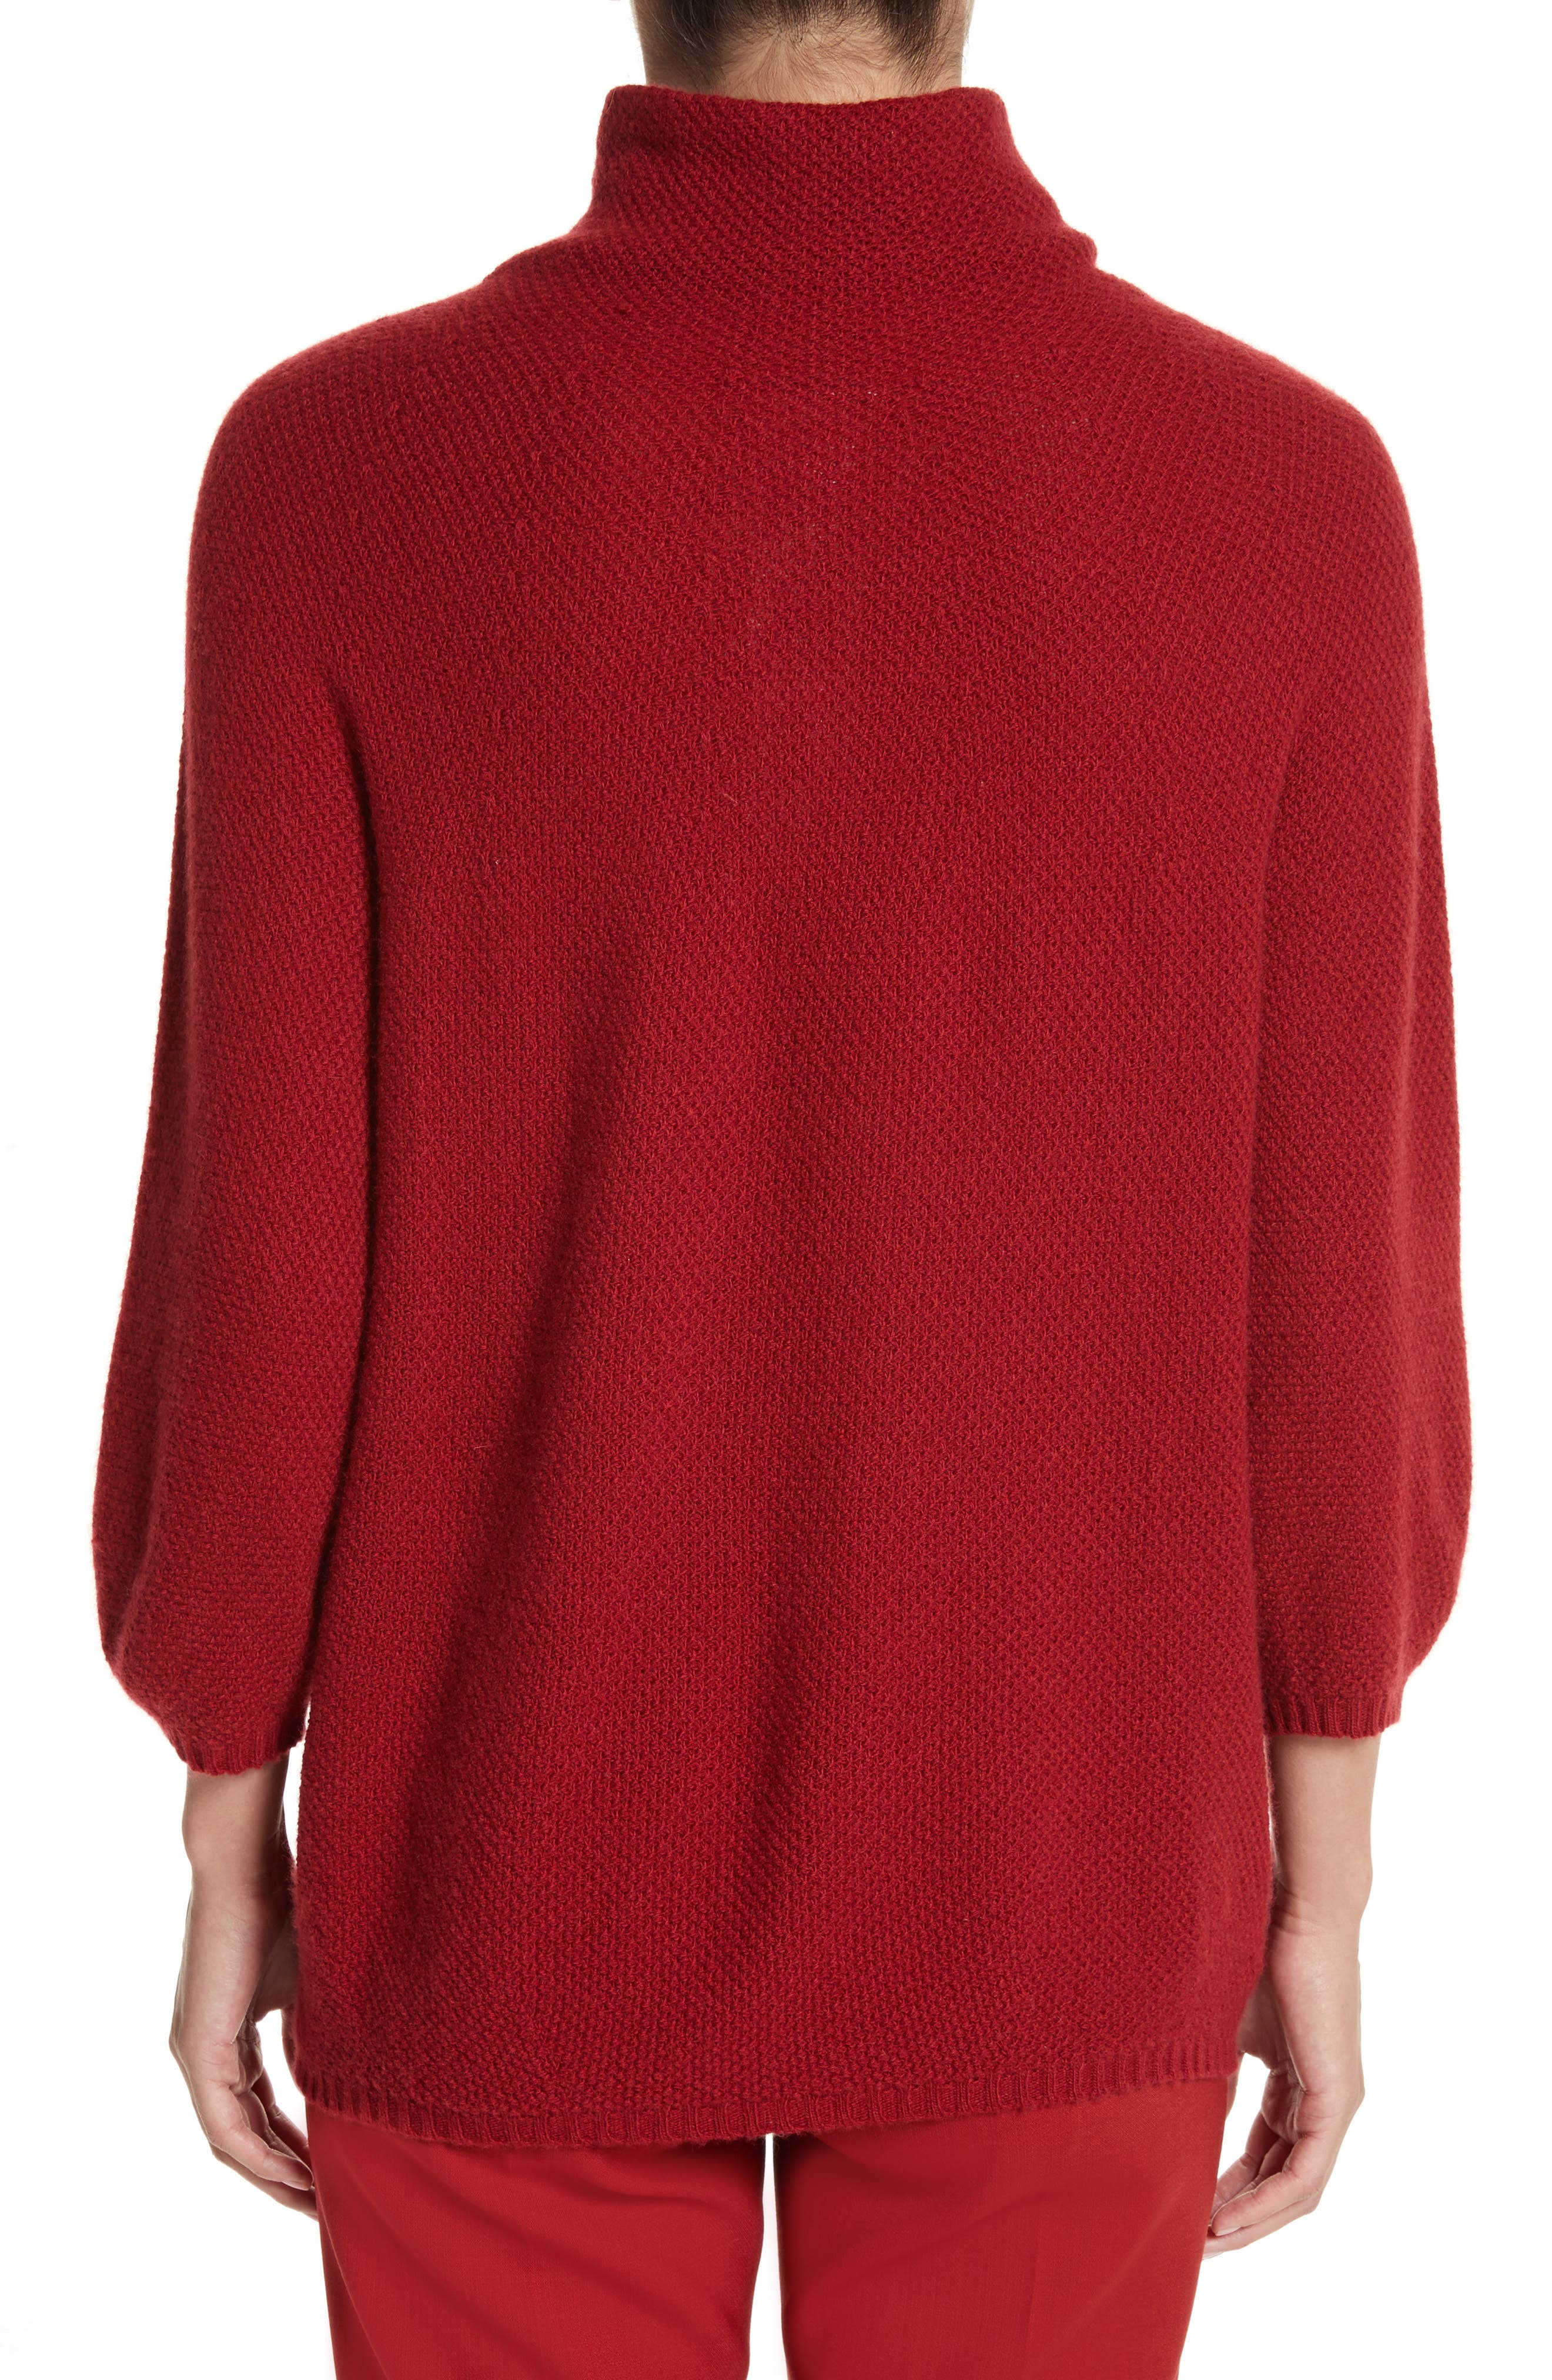 Belgio Wool & Cashmere Sweater,                             Alternate thumbnail 2, color,                             614